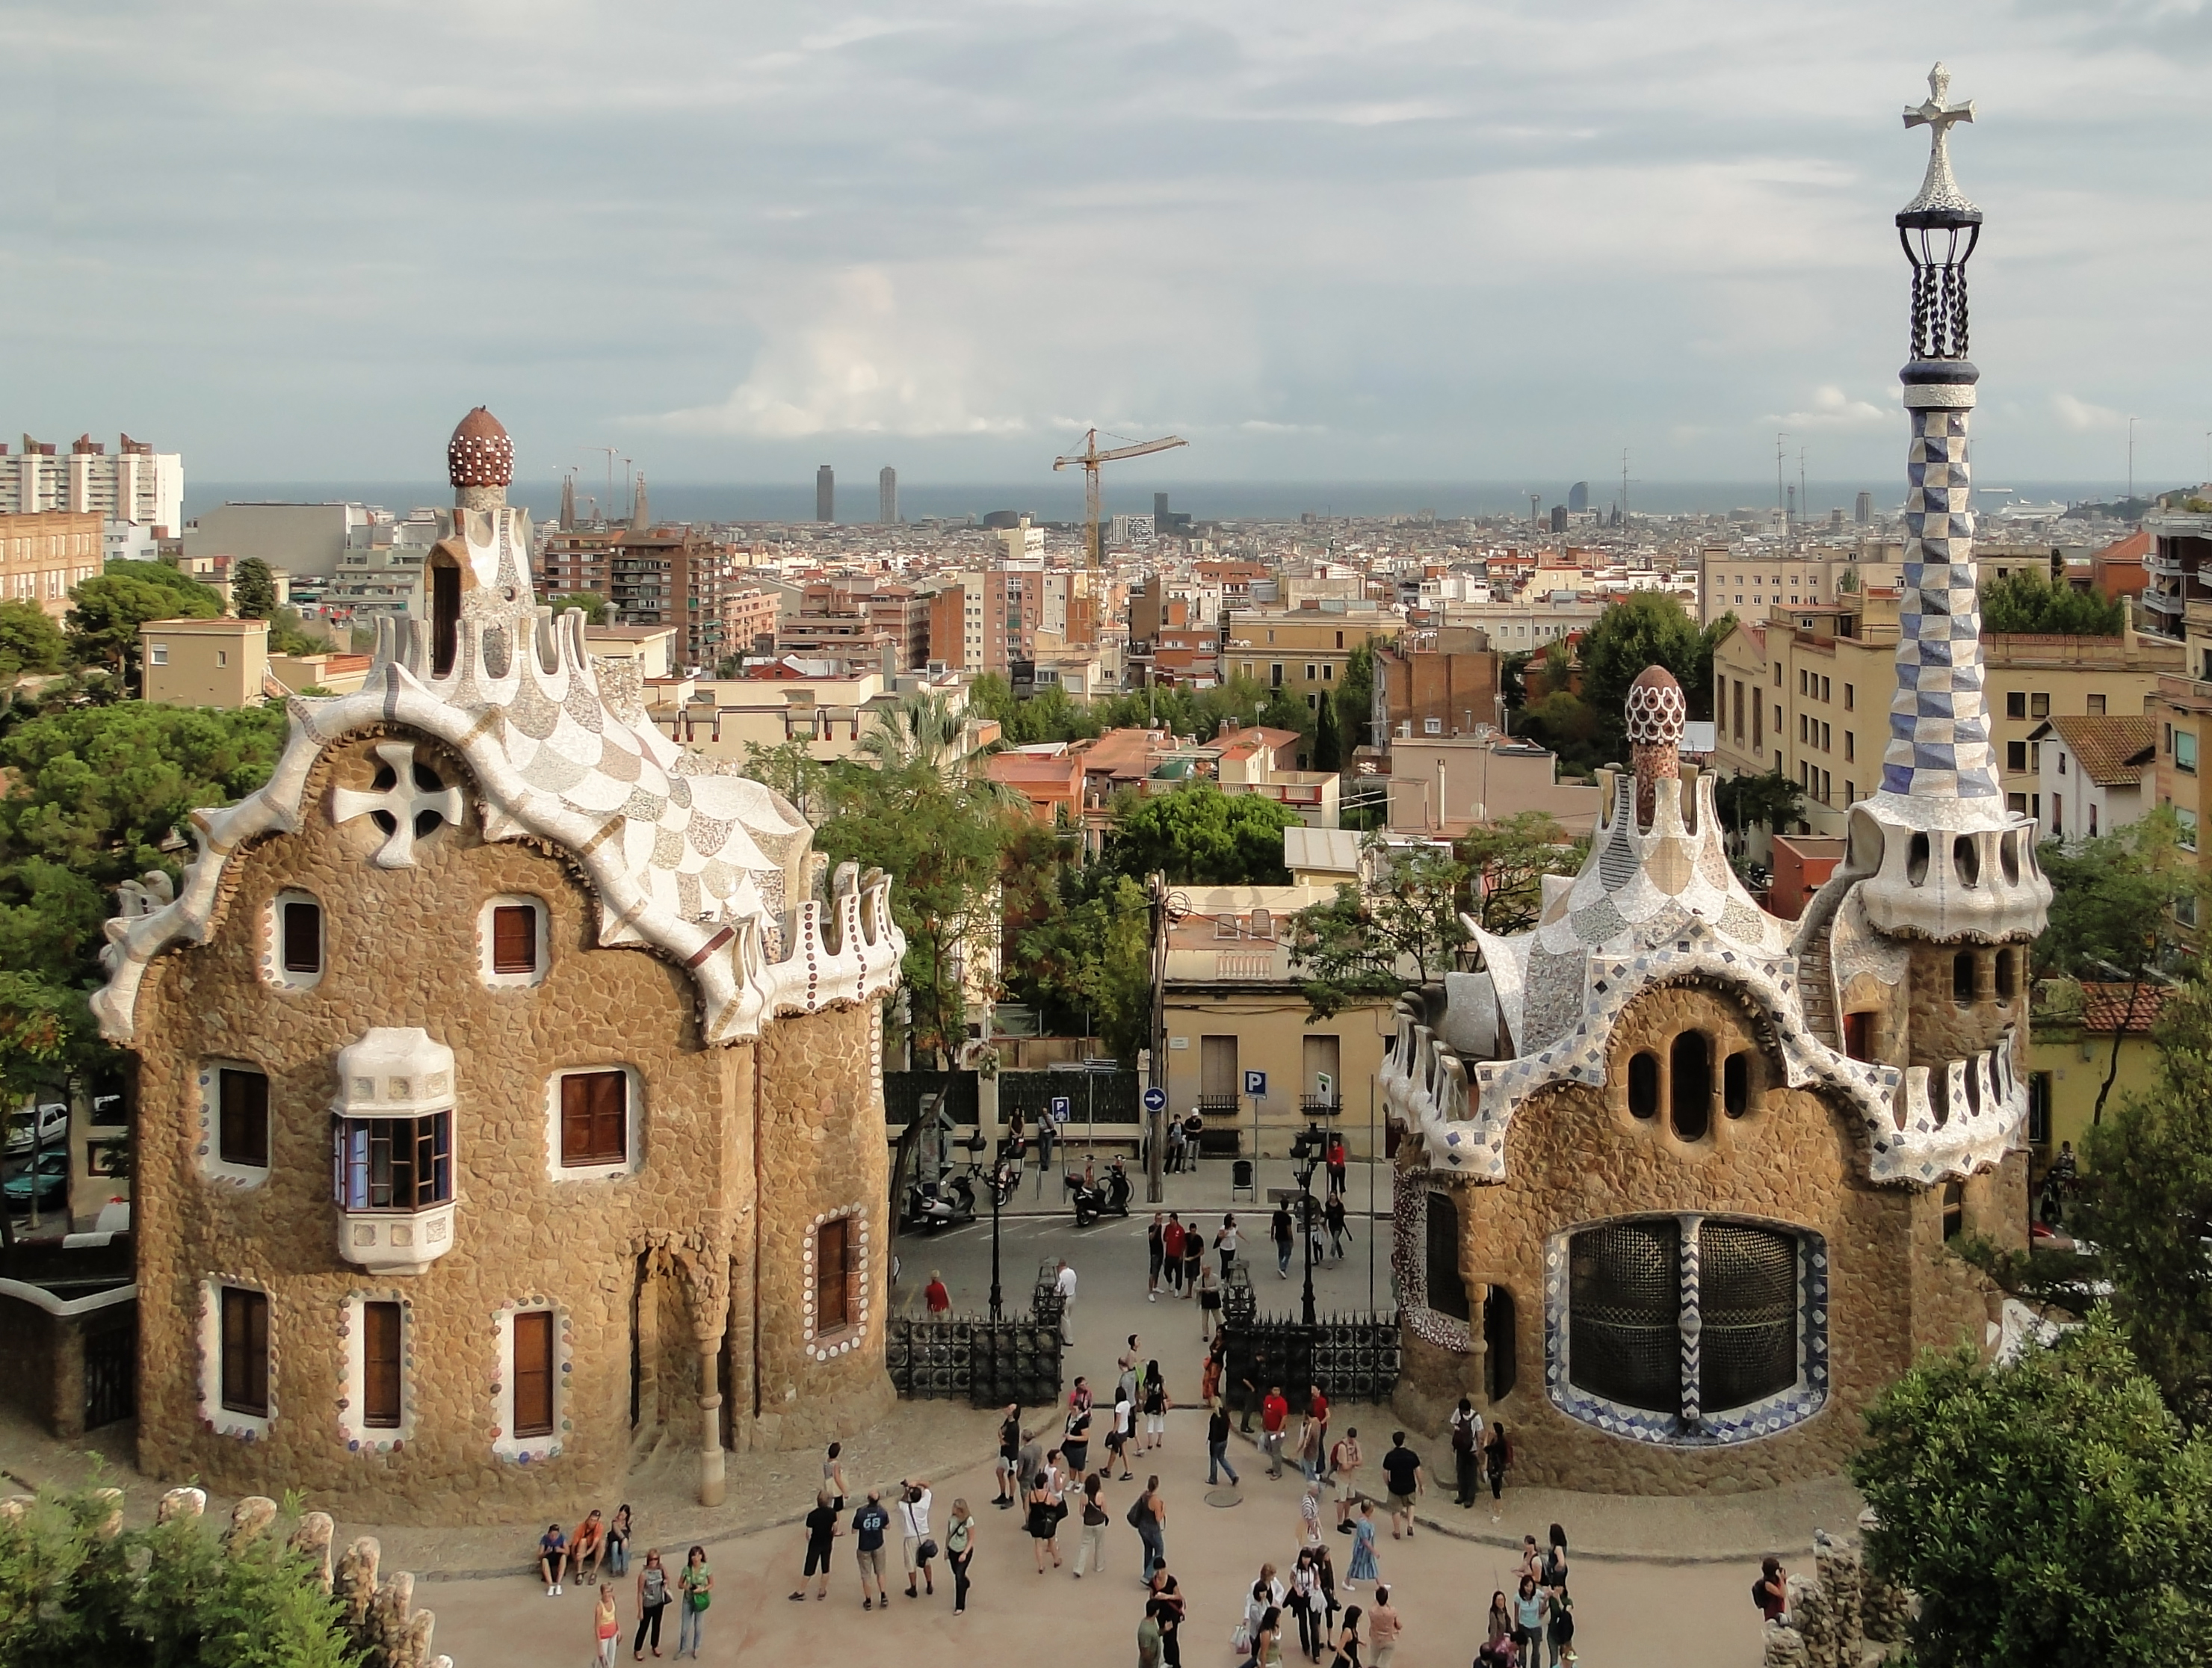 35 fabulous photos of Park Guell in Barcelona,Spain. : Places : BOOMSbeat